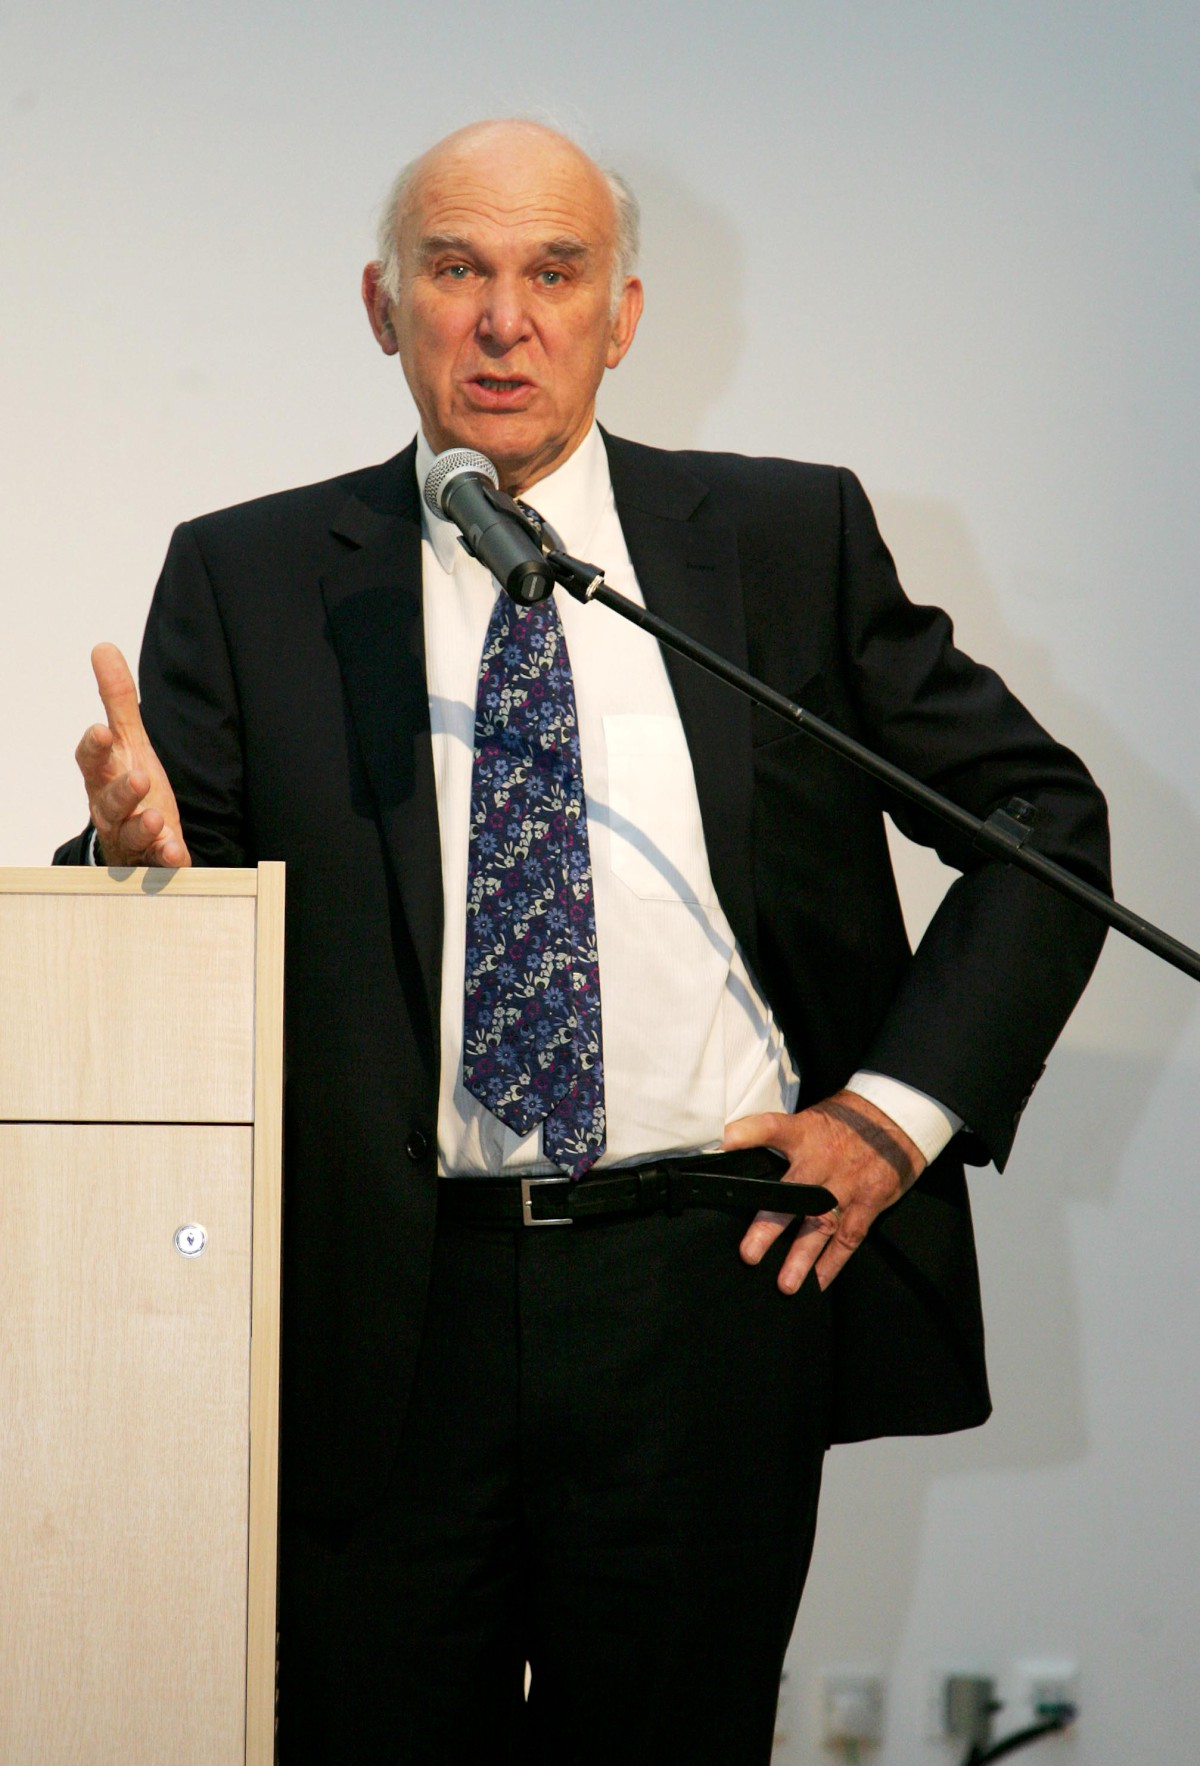 Safe standing: Vince Cable